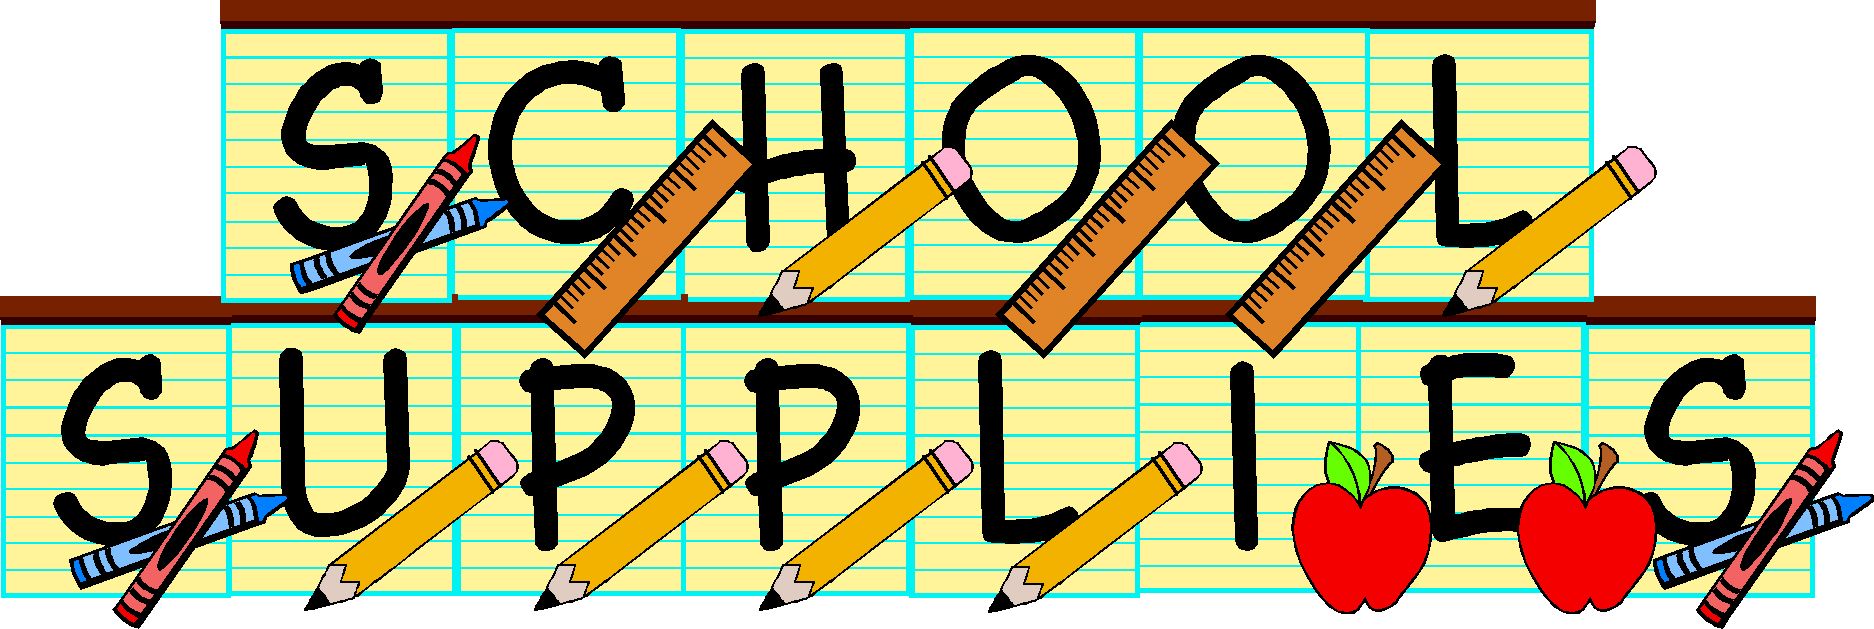 Mission Registration School S - School Supply Clipart